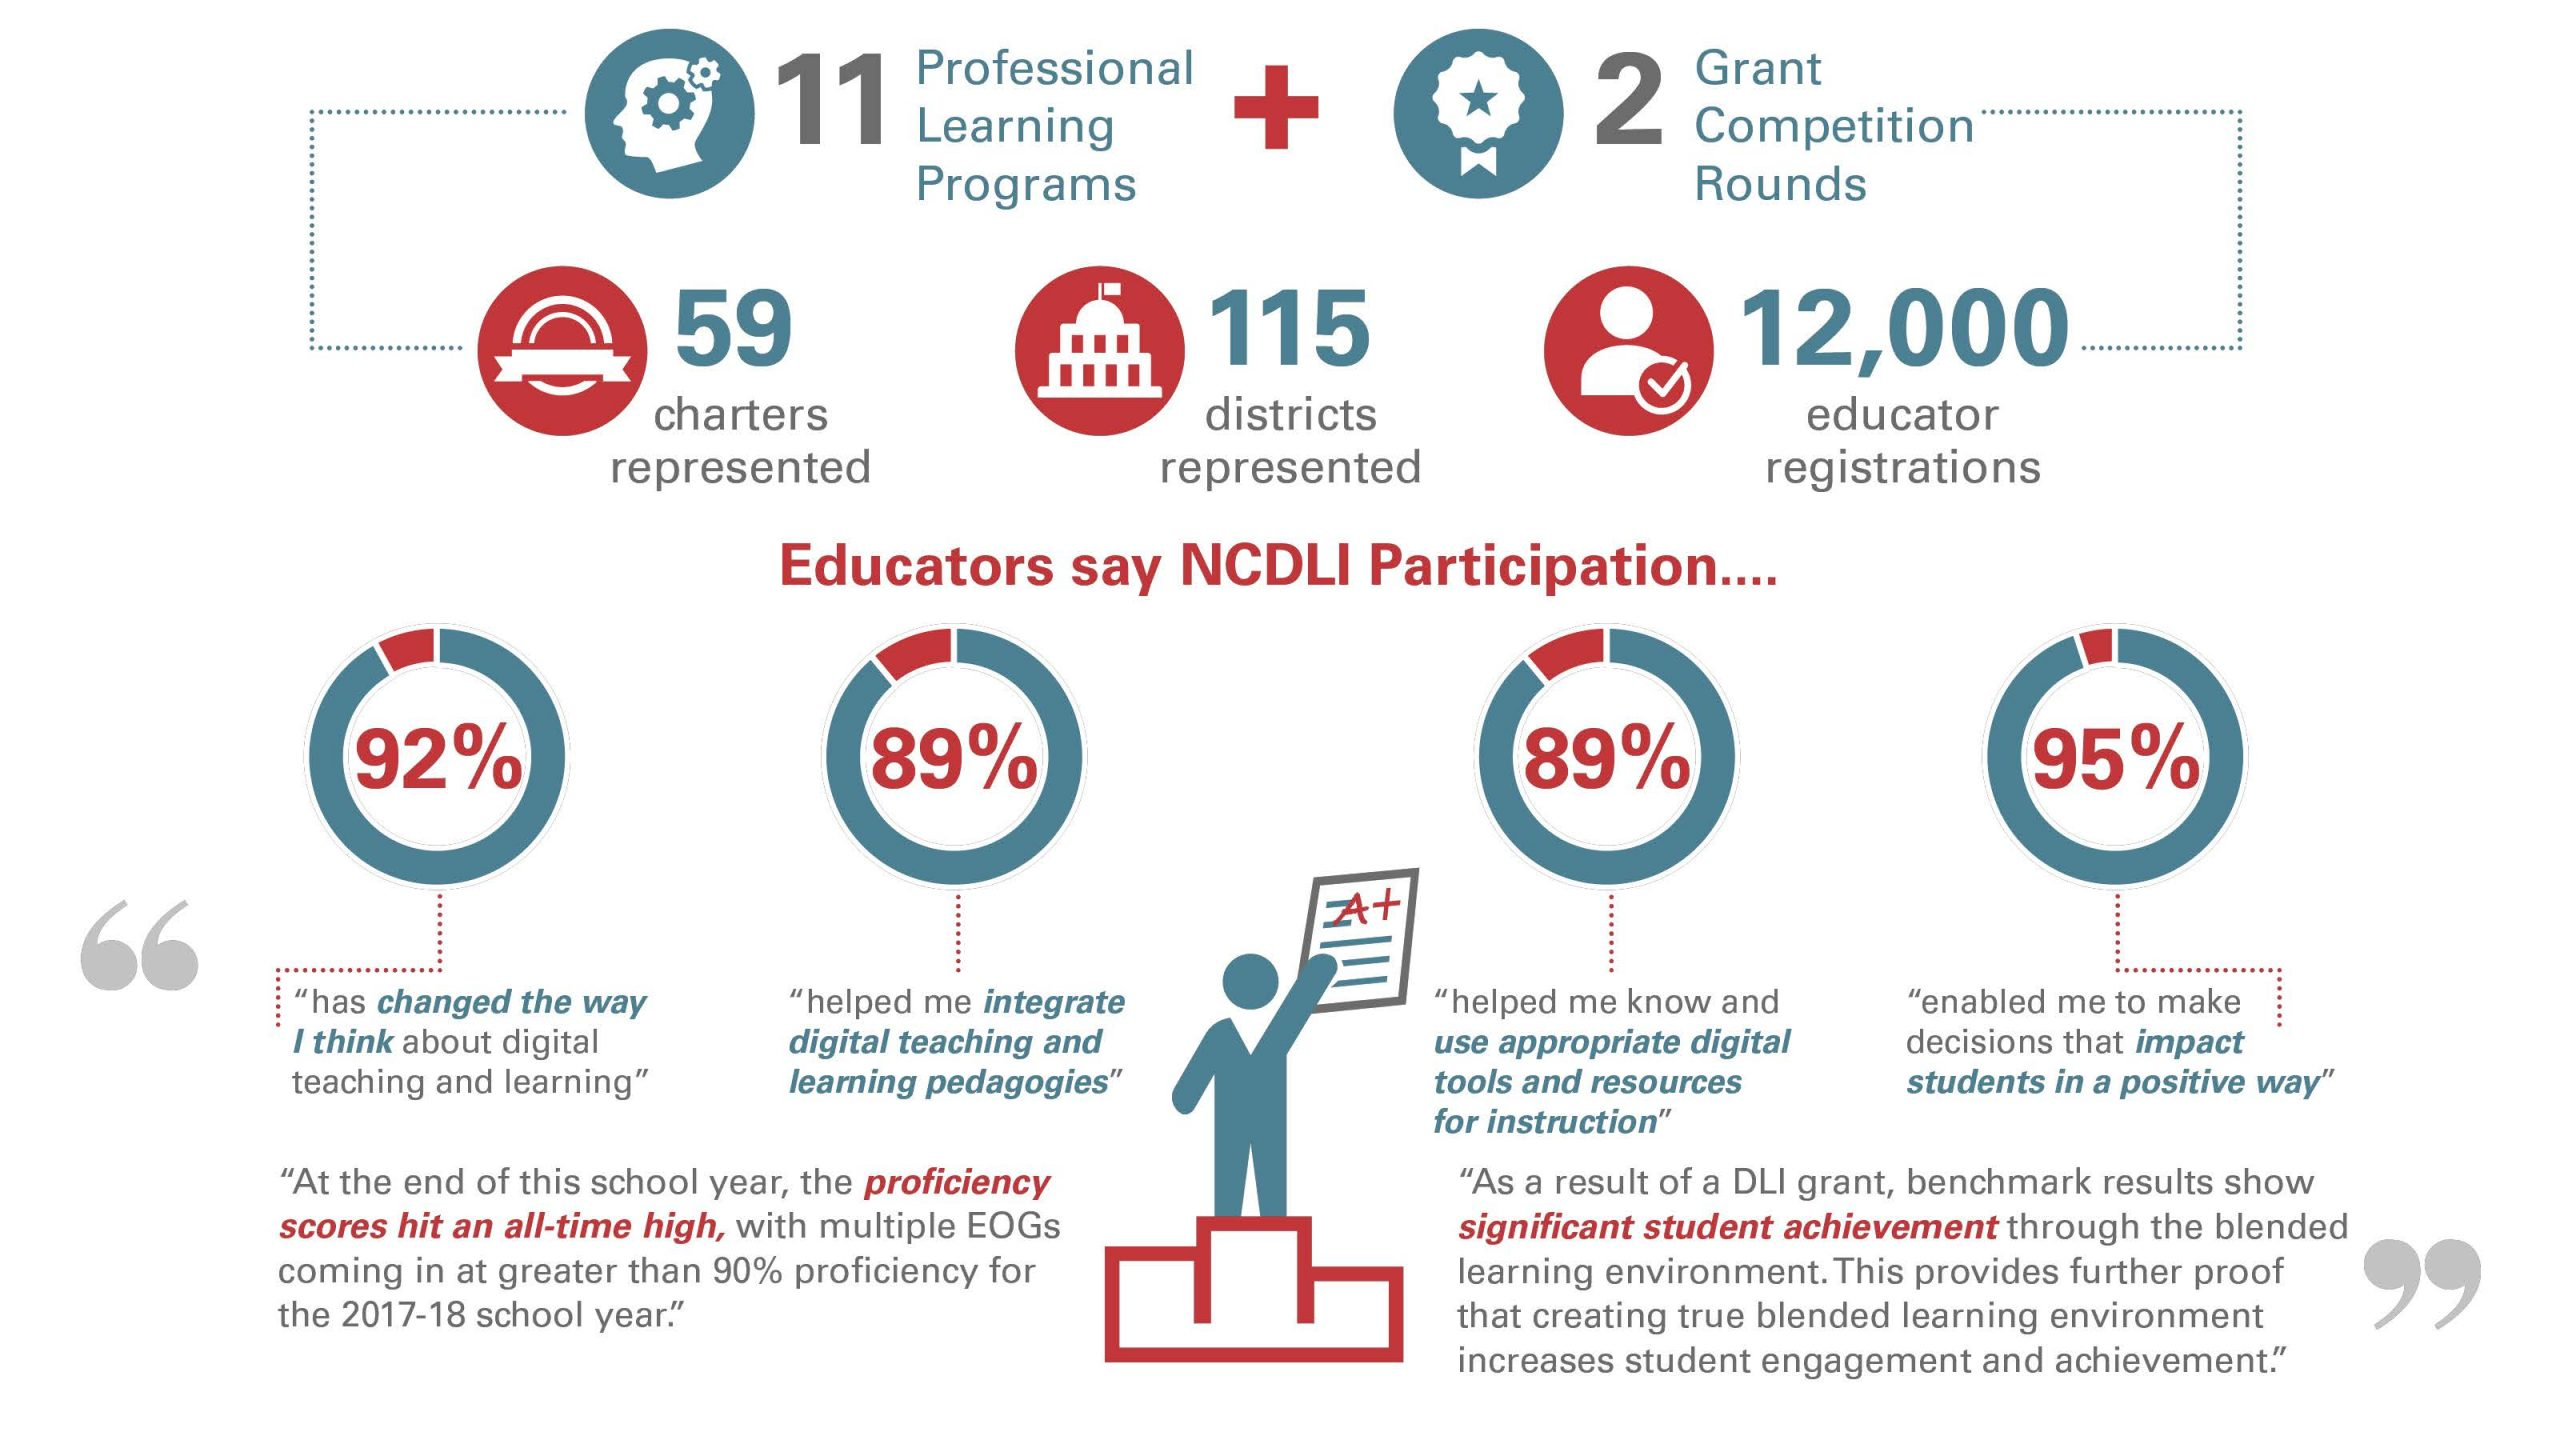 Infographic on what educators had to say about their NCDLI participation and the collective impacts of NCDLI efforts on teaching and learning.